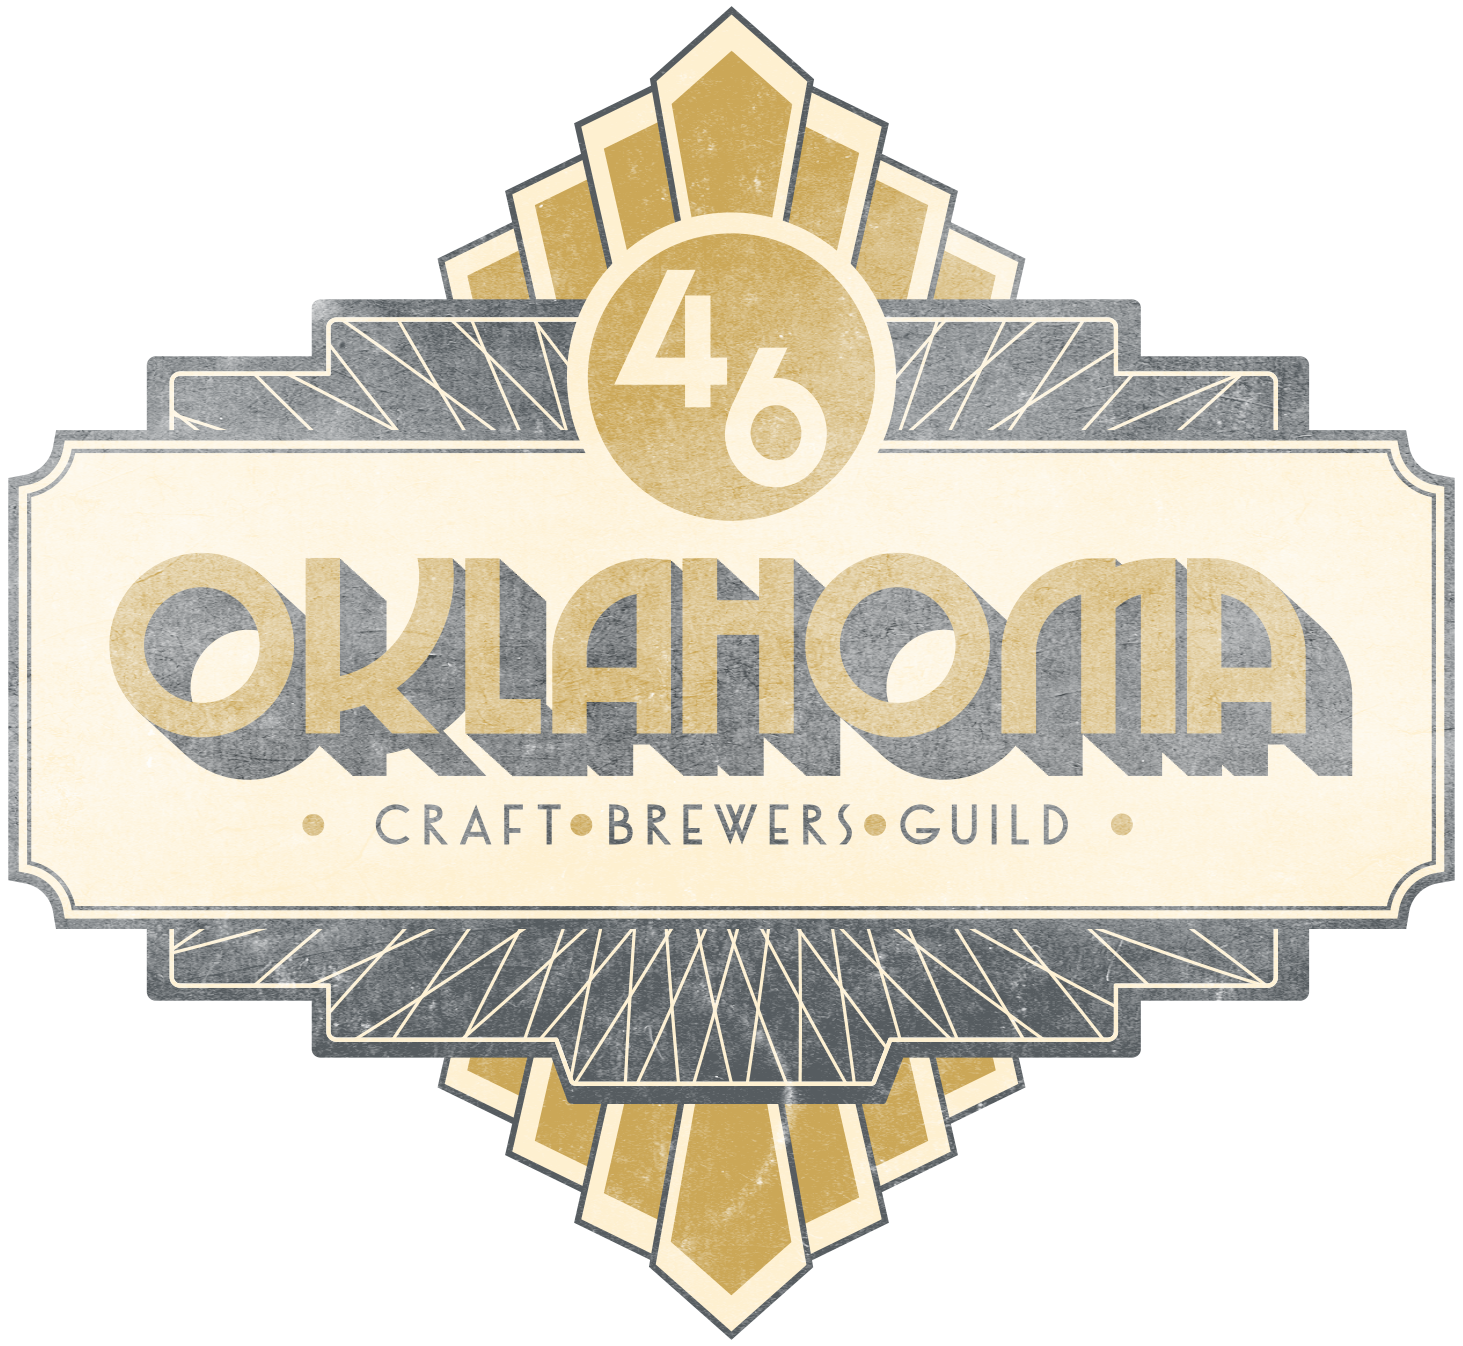 Oklahoma Craft Brewers Guild